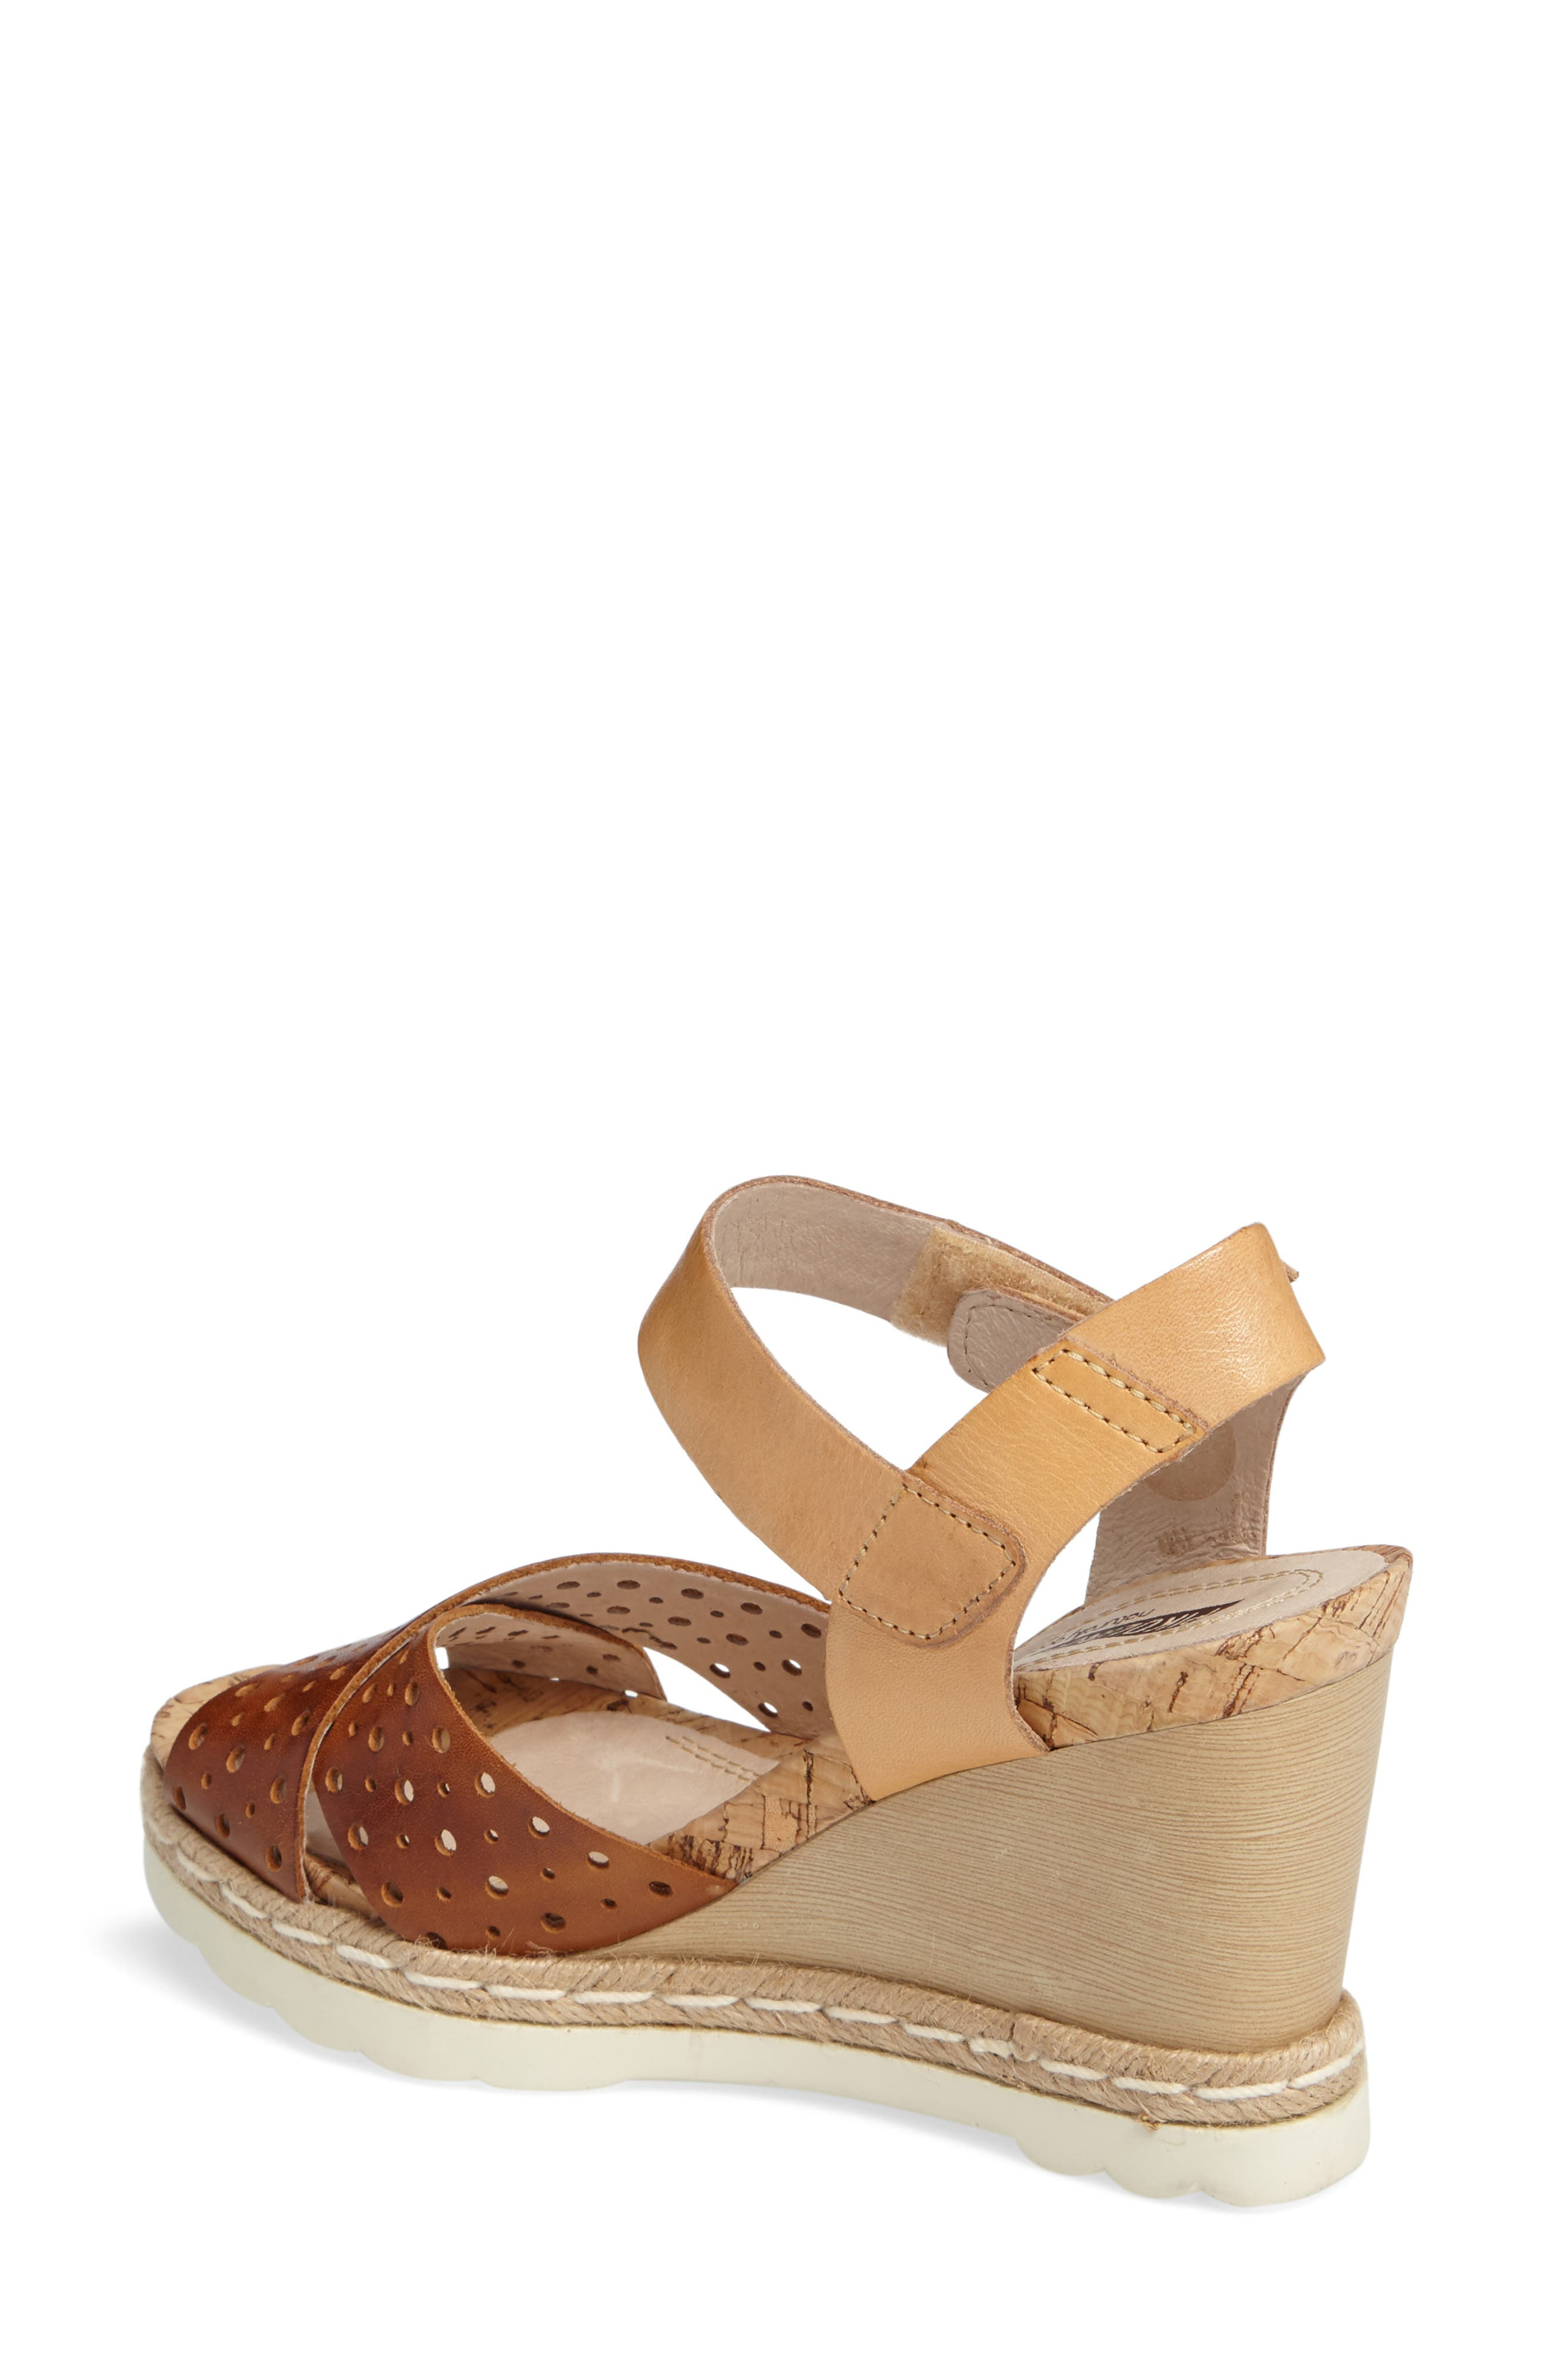 Bali Wedge Sandal,                             Alternate thumbnail 2, color,                             BRANDY CAMEL LEATHER